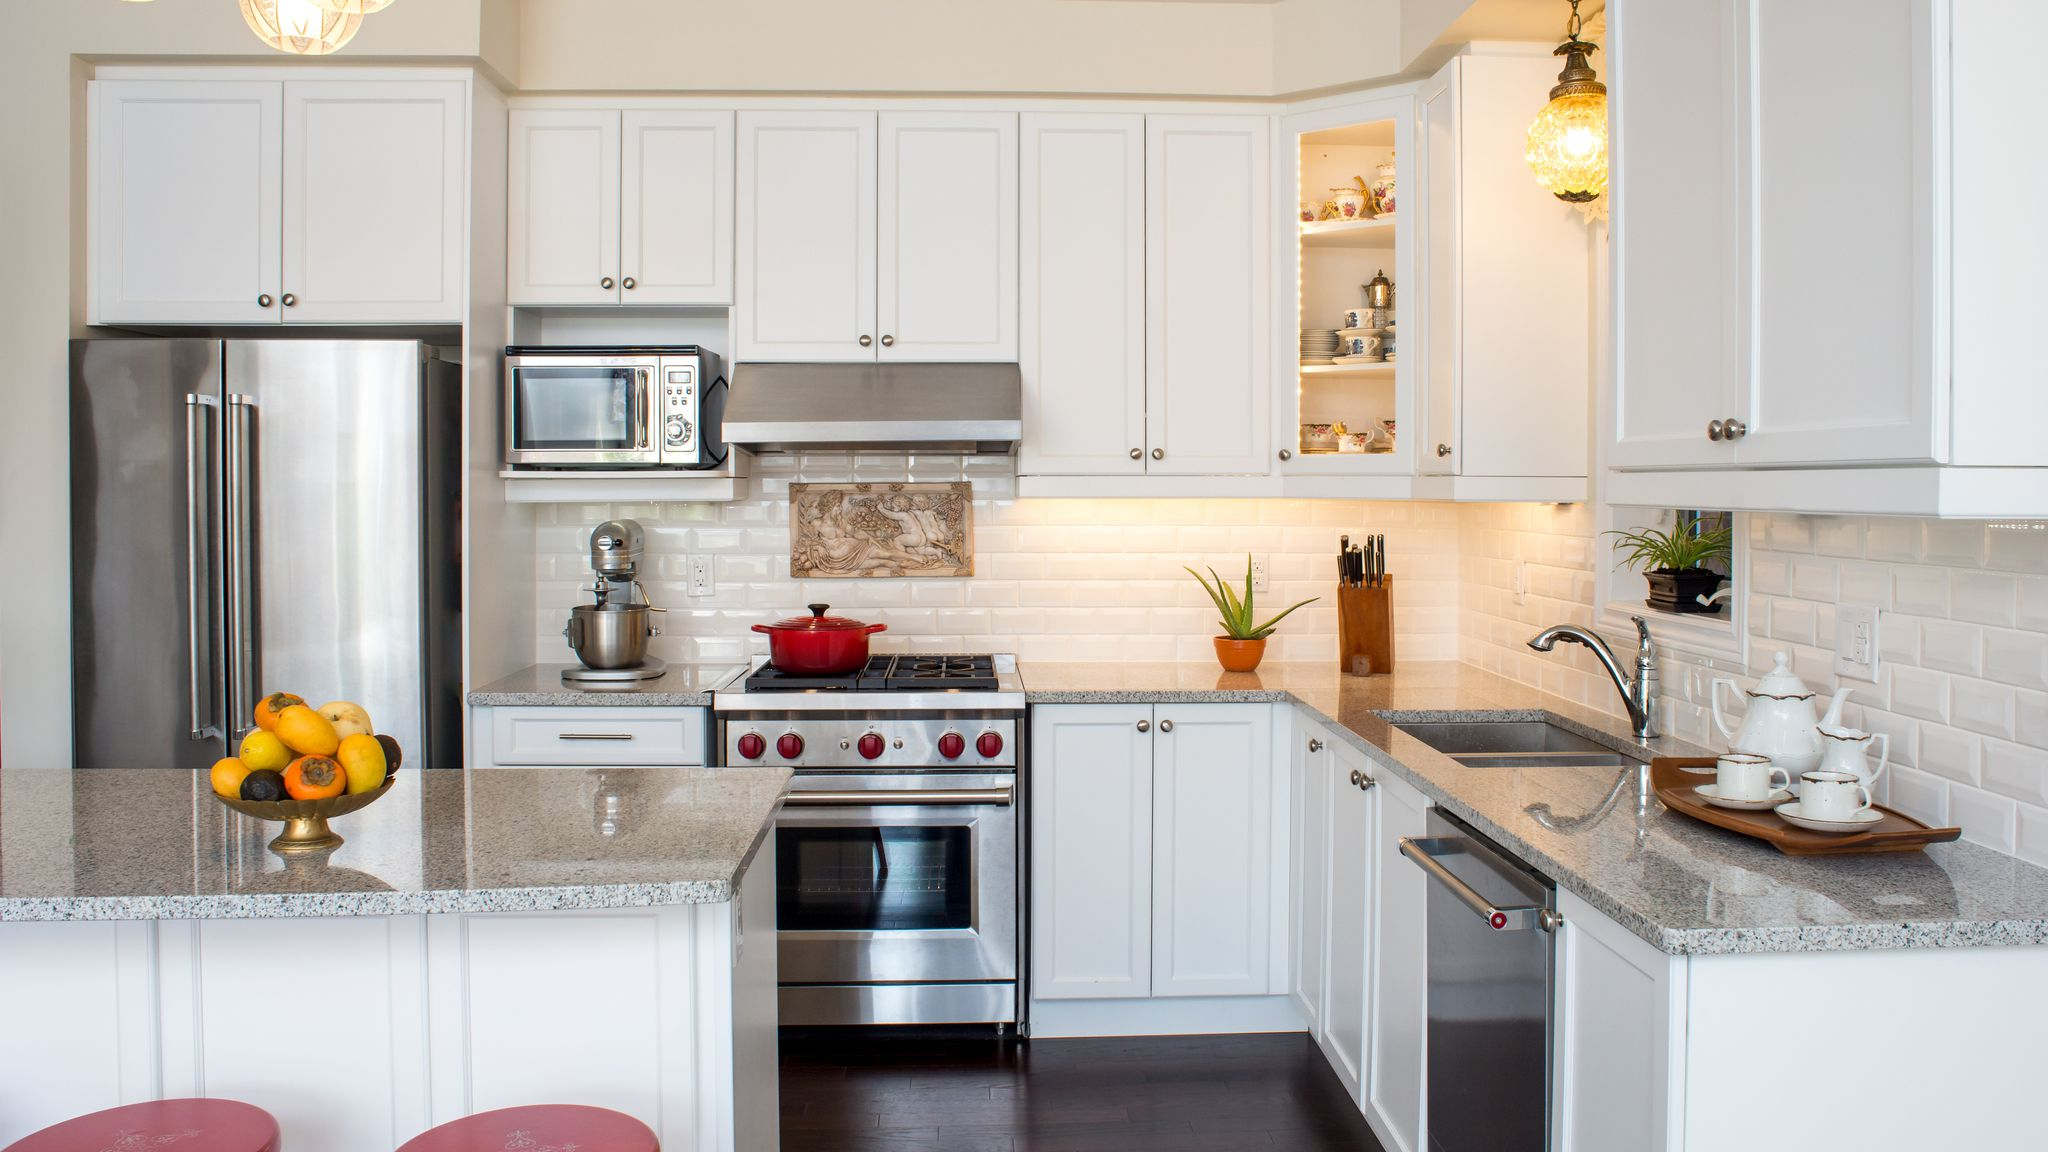 How To Fix Kitchen Cabinet Open Soffits